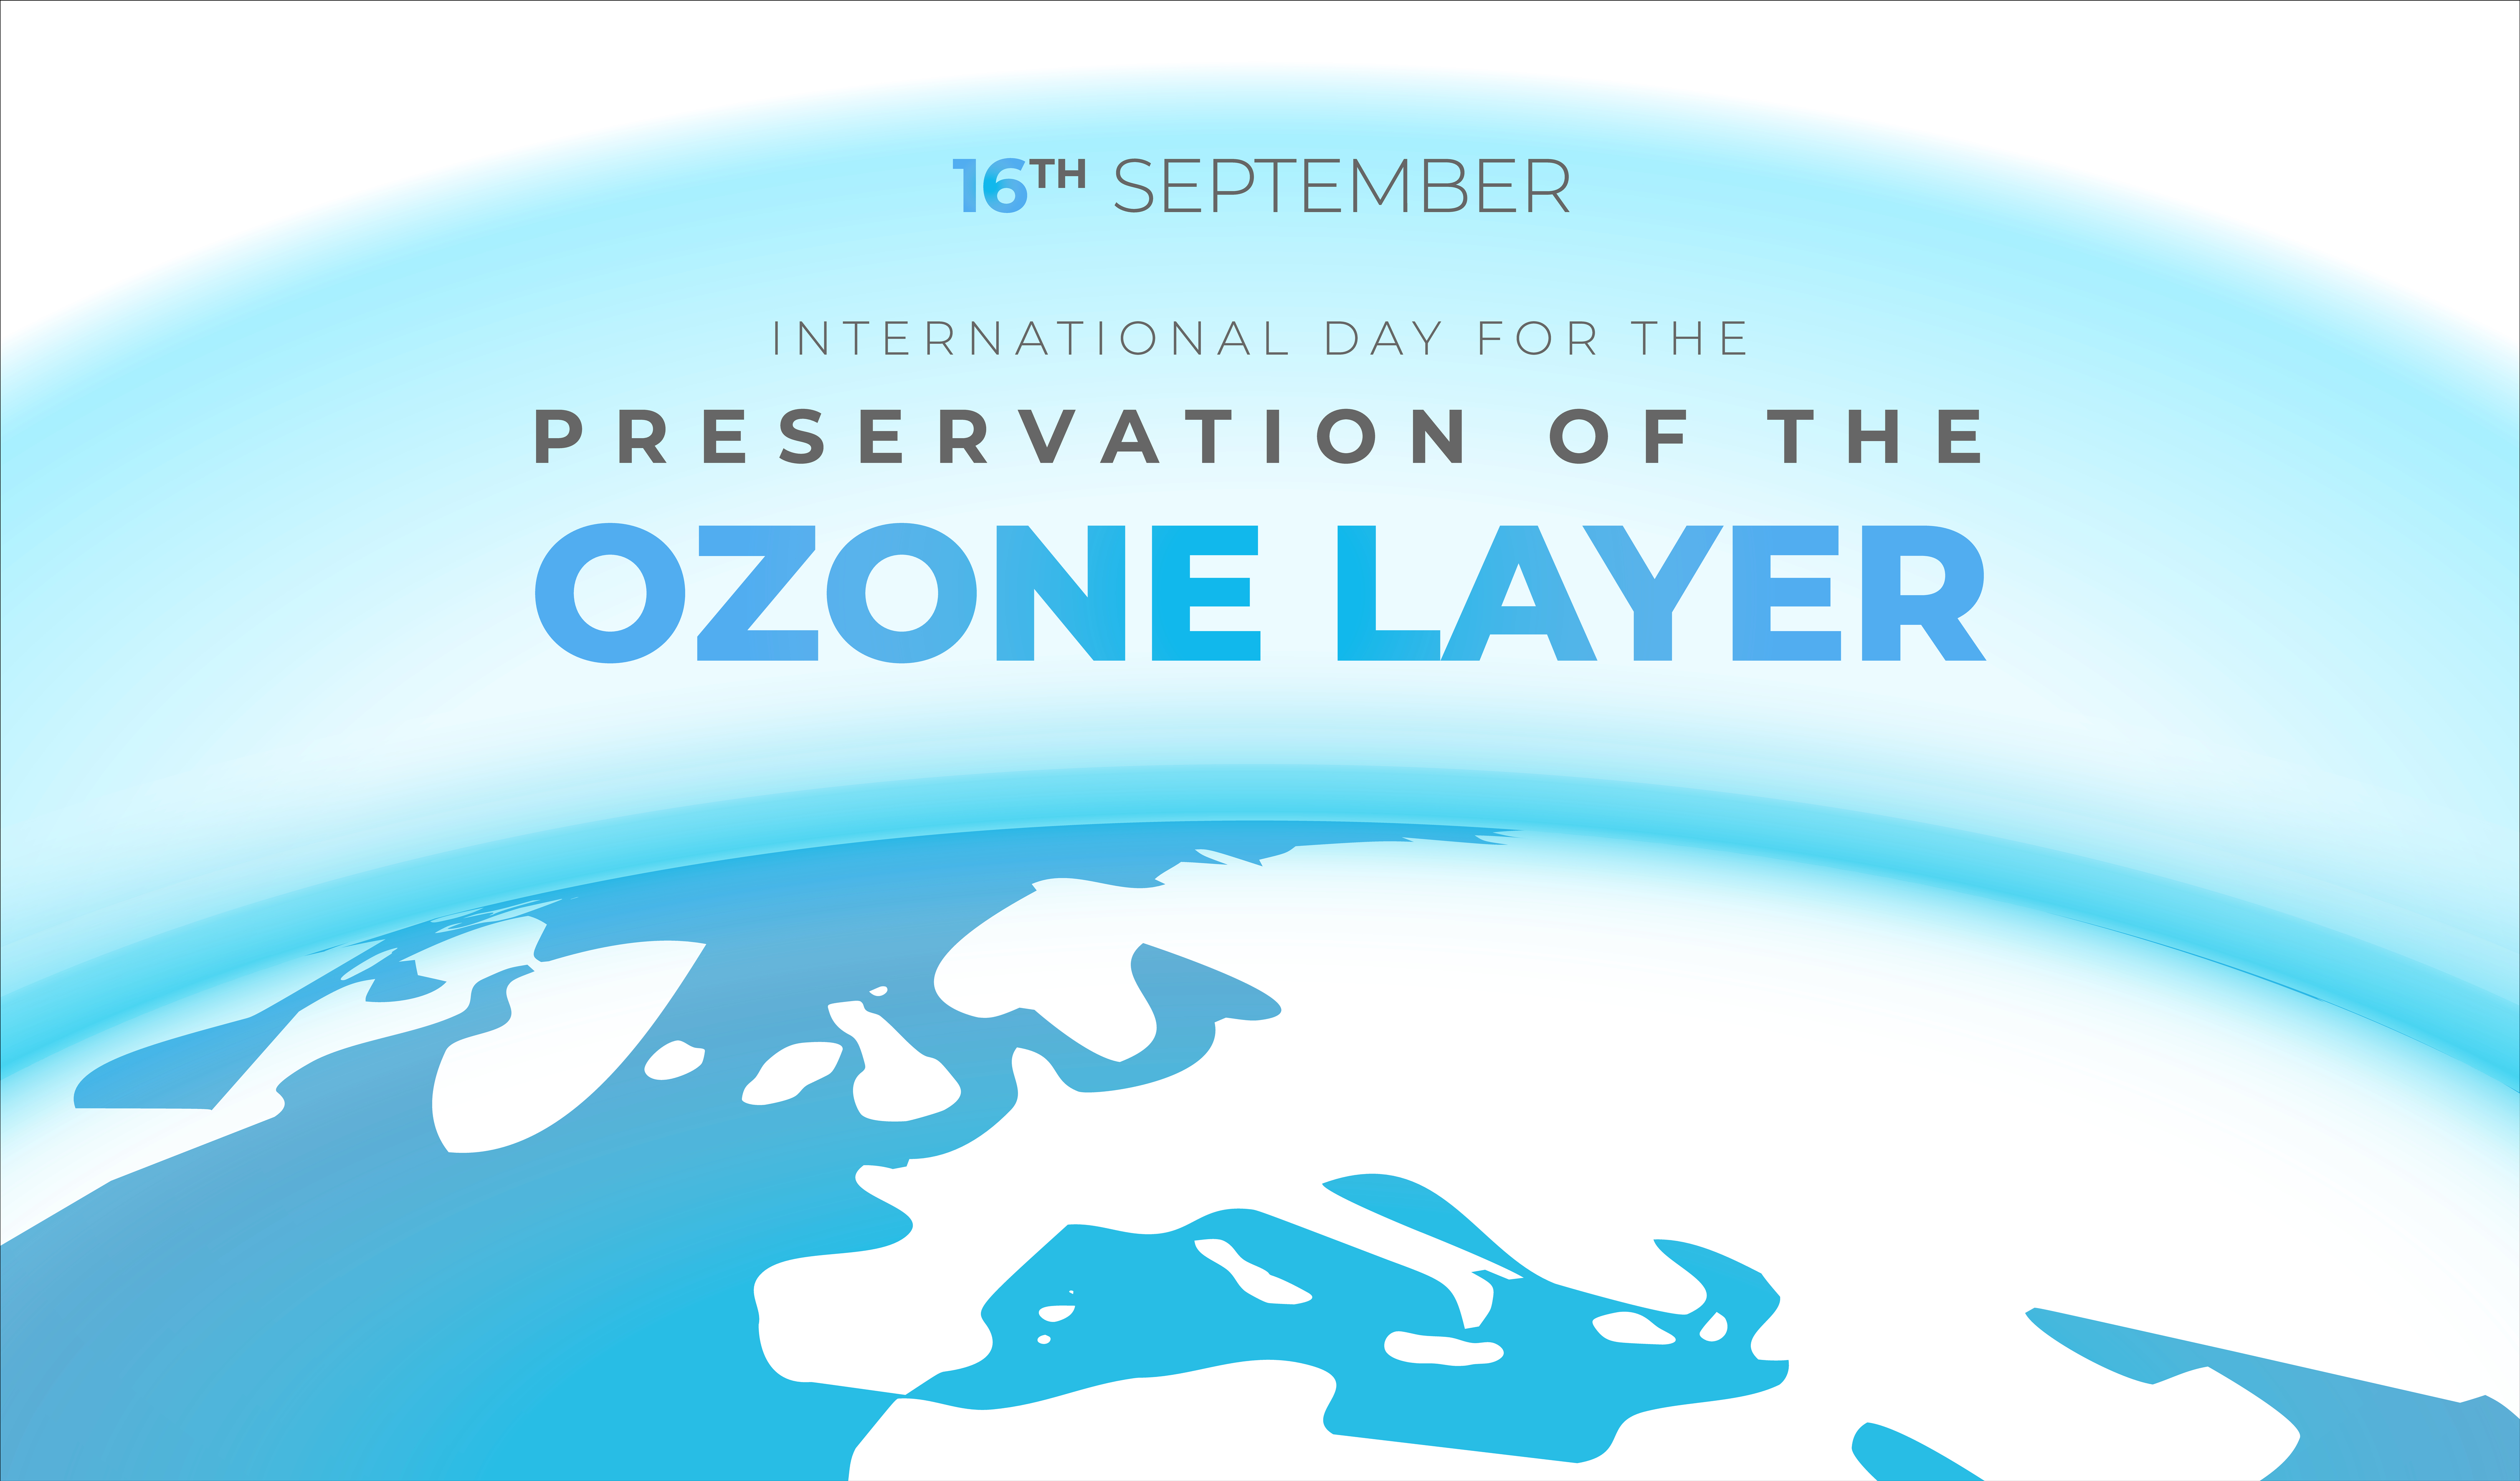 international day for the preservation of the ozone layer header image